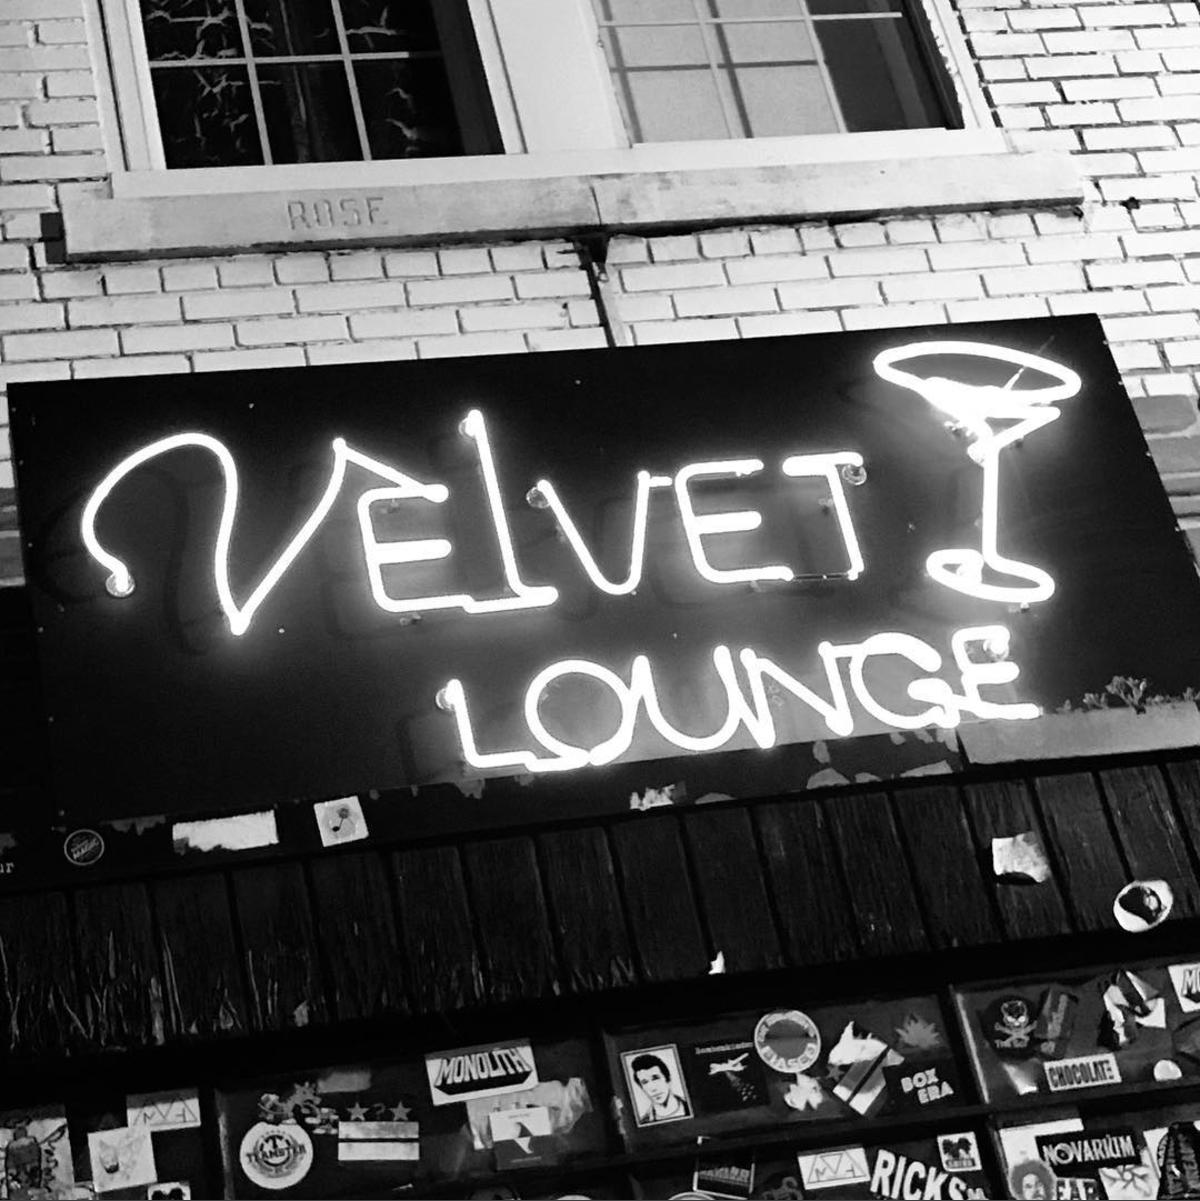 Velvet Lounge is a lowkey gem of a music venue, right down to the neon sign. (Image via @kattienoir)